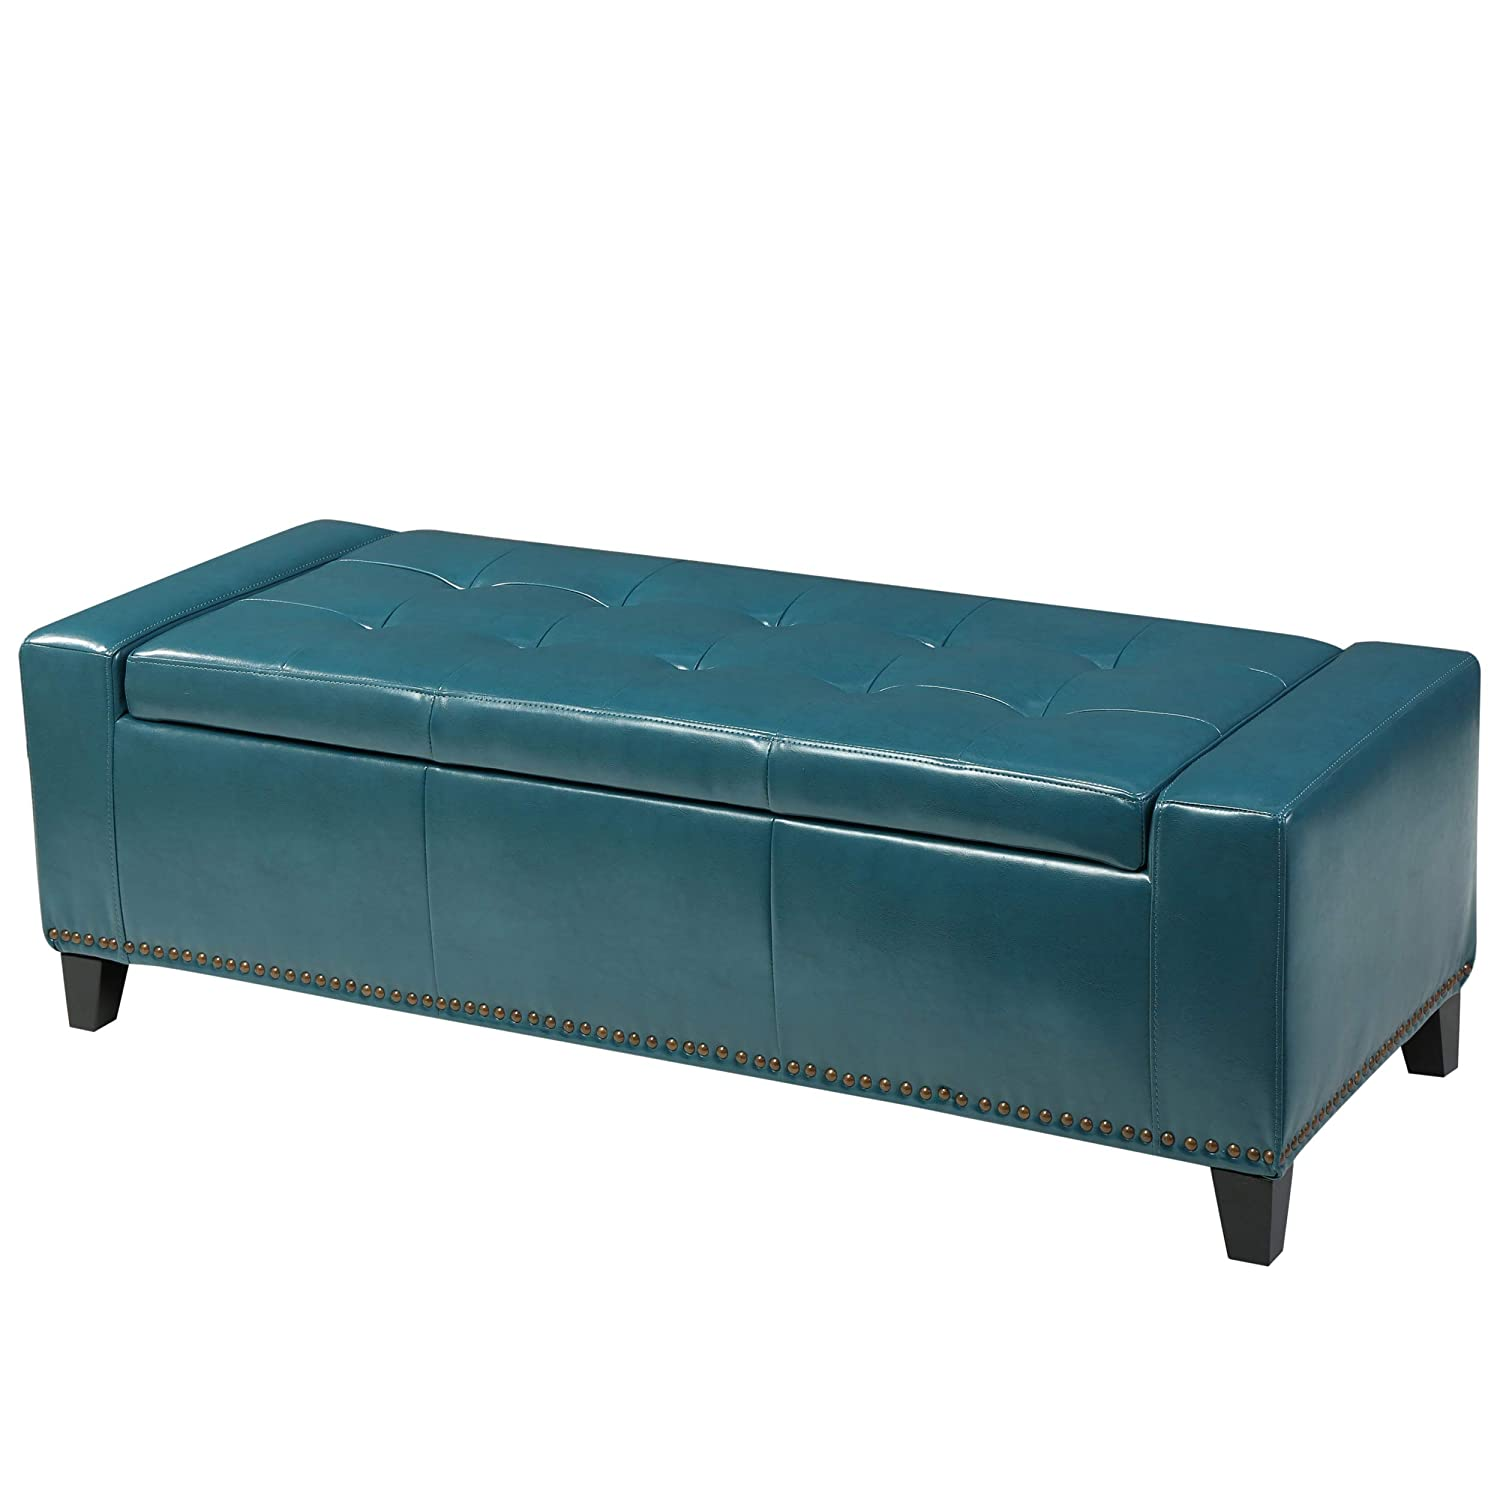 Christopher Knight Home 296761 Living Robin Studded Teal Leather Storage Ottoman Bench